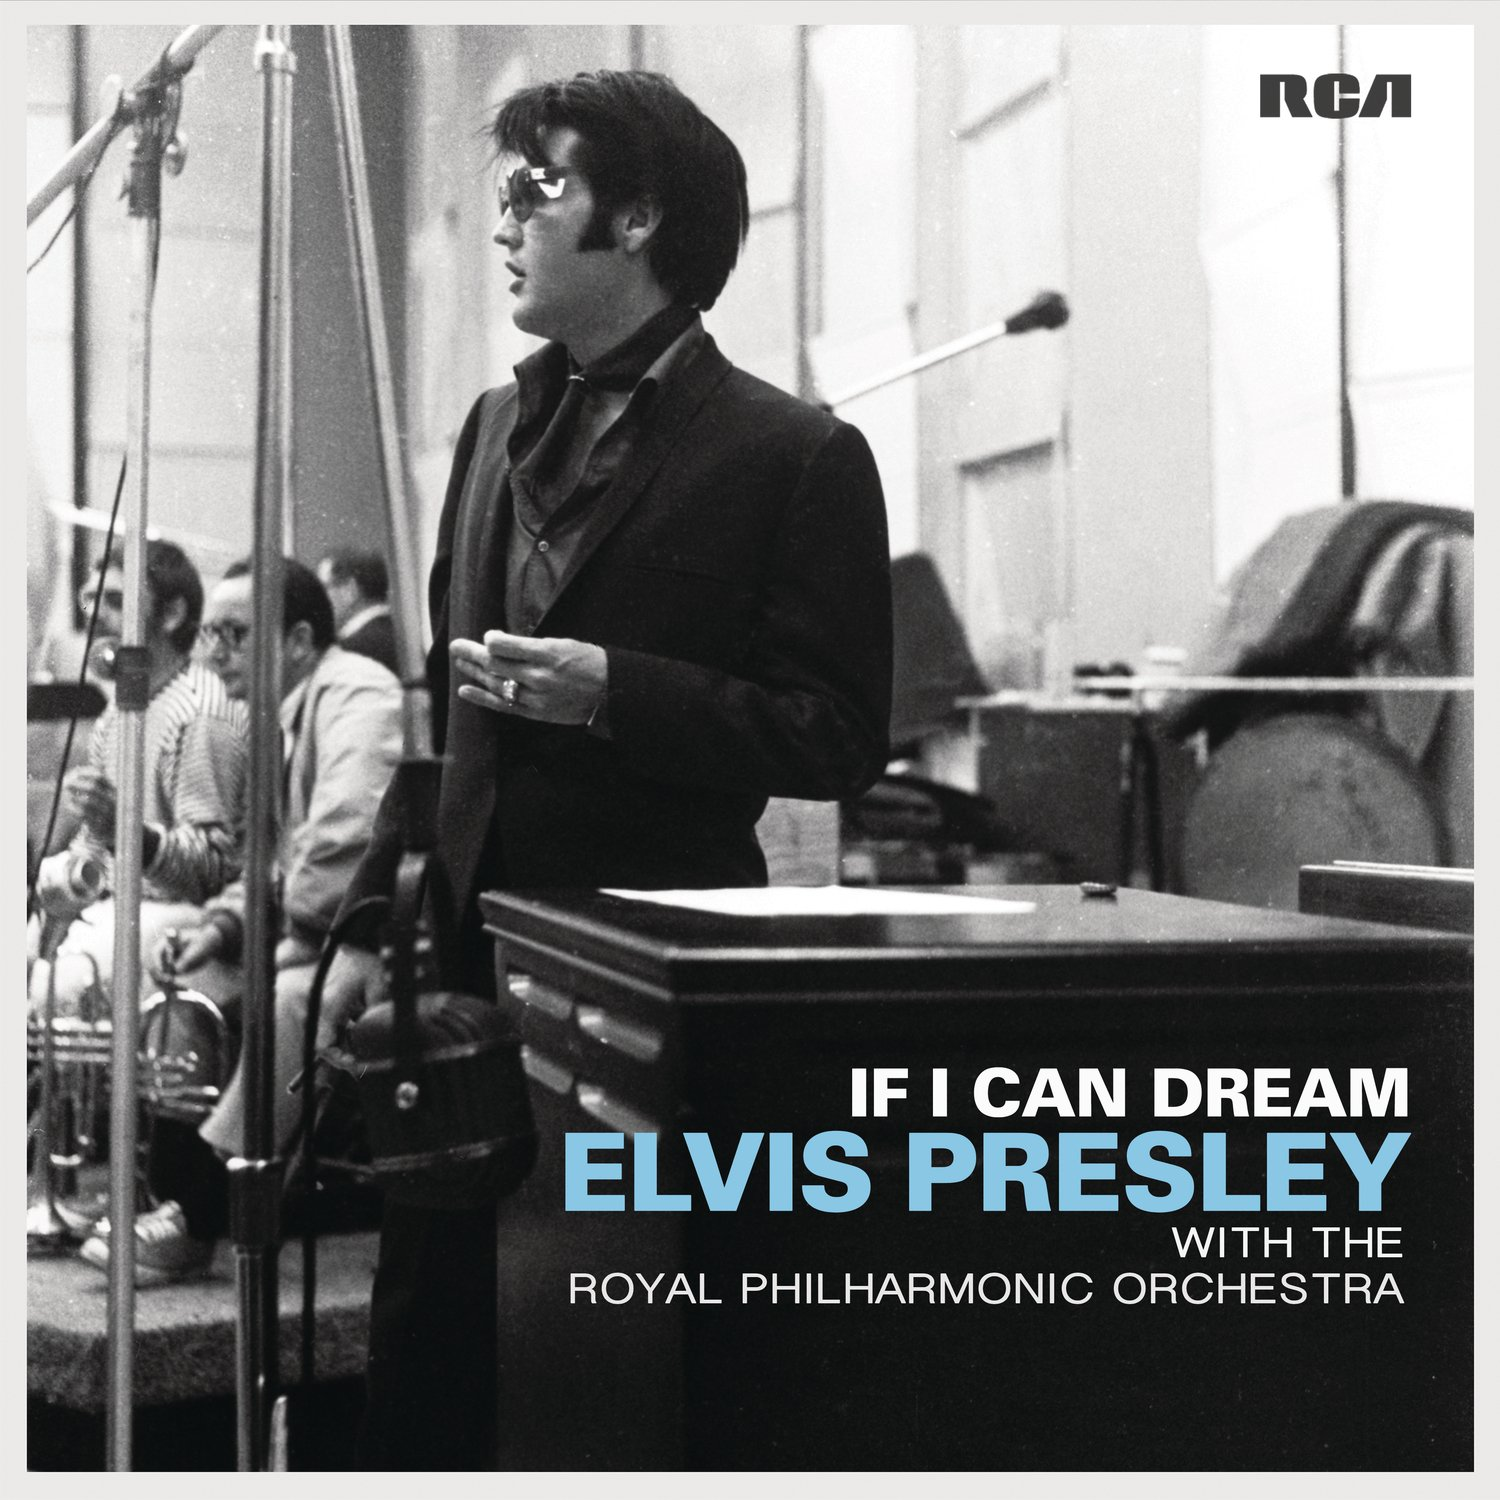 If I Can Dream Elvis Presley With The Royal Philharmonic Orchestra